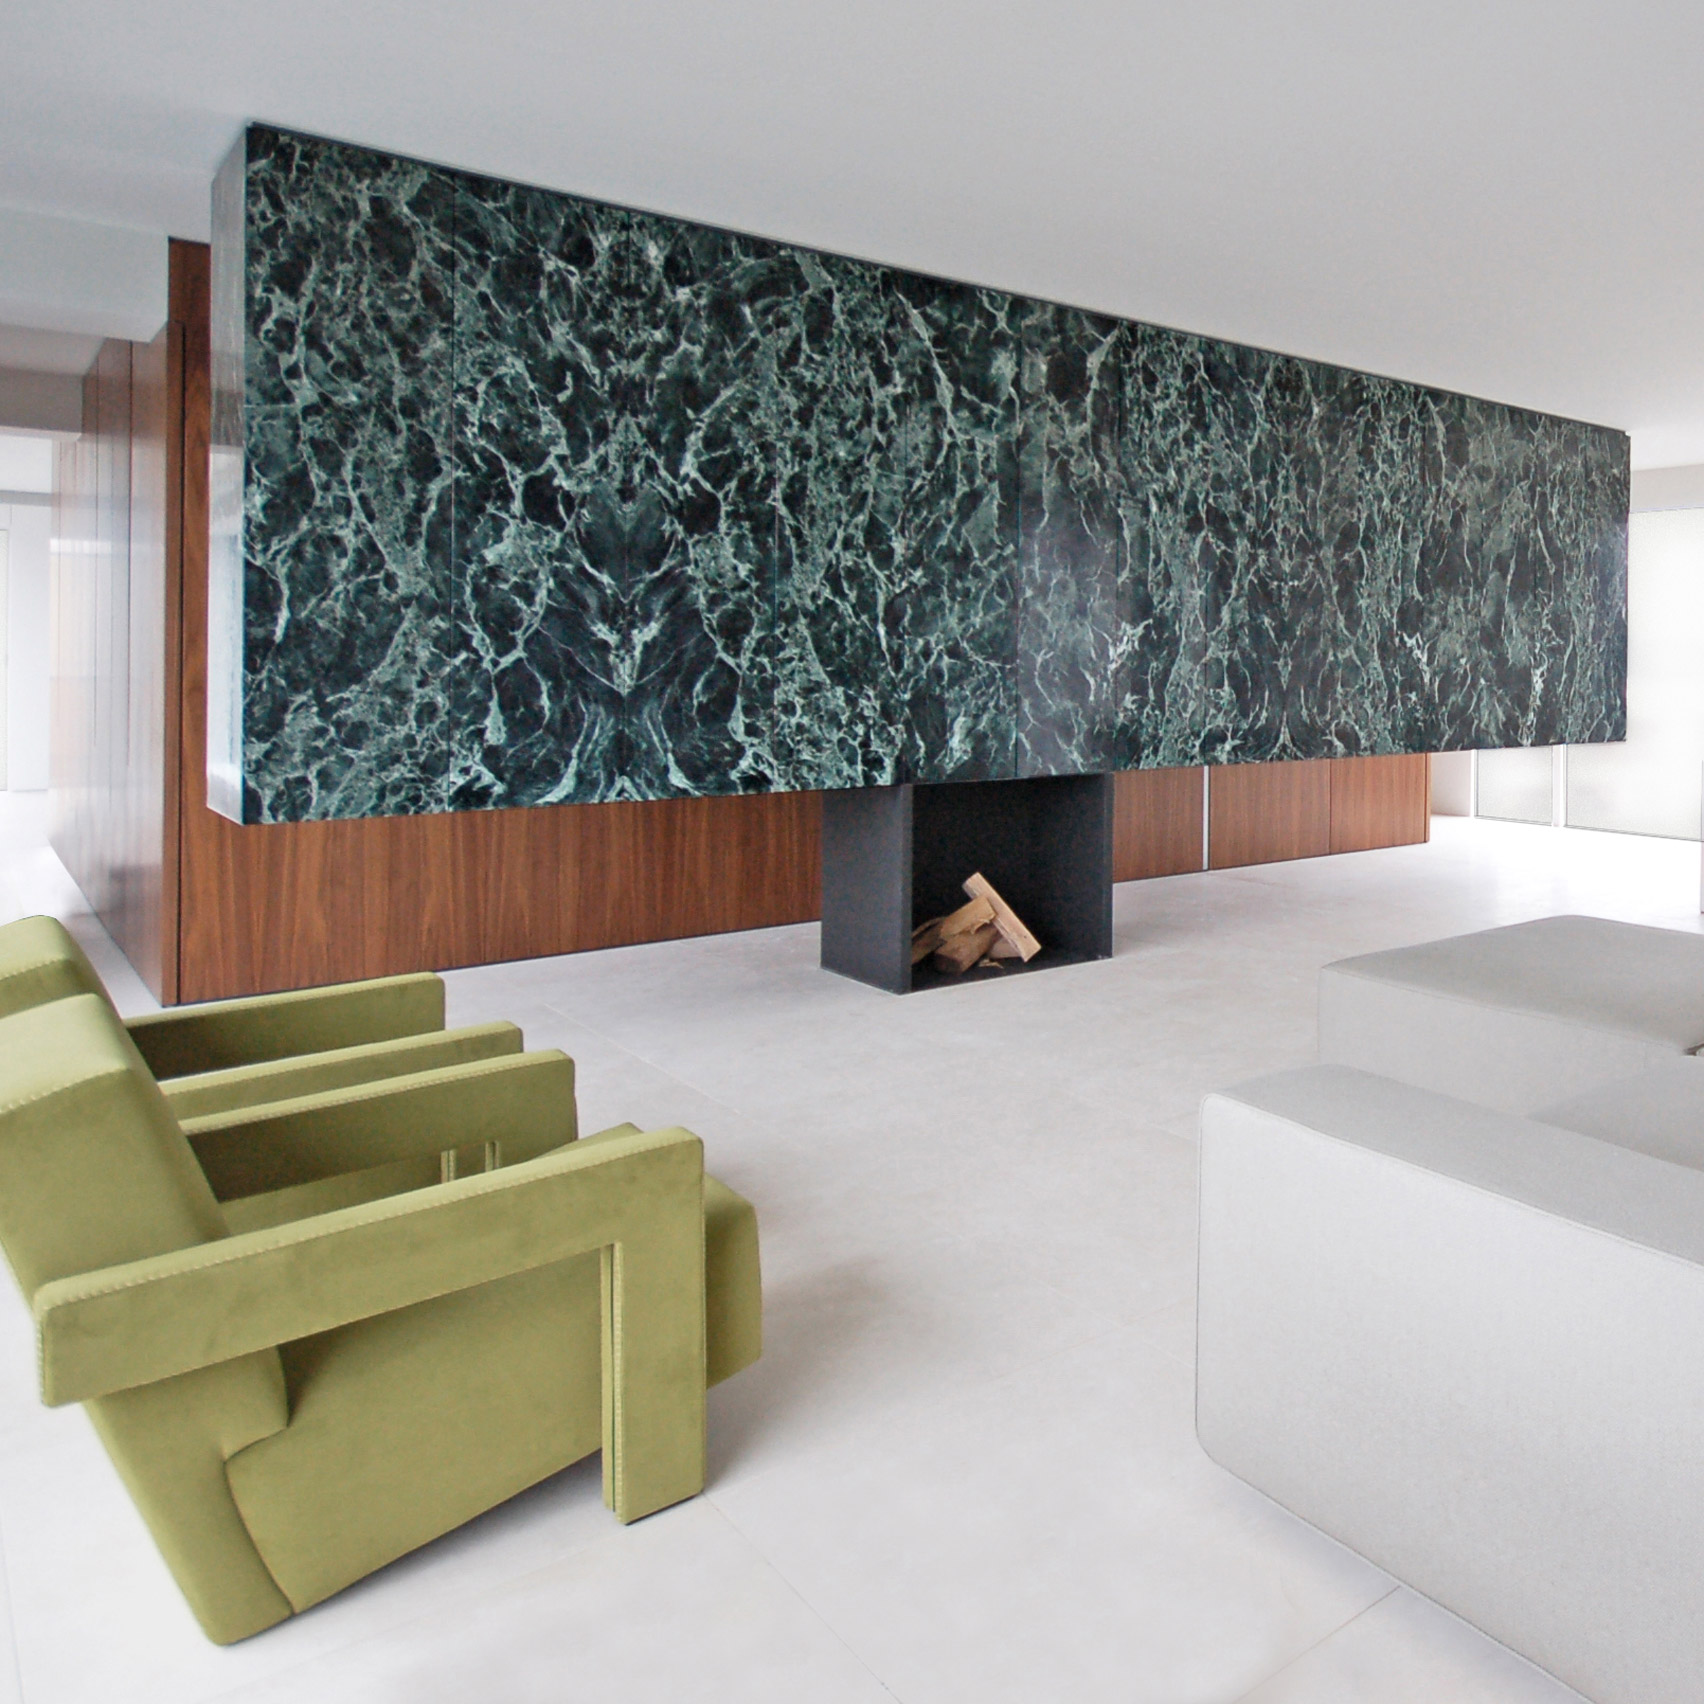 Hasta La Ideas Blog Archive 10 Contemporary Homes That Make Clever Use Of Marble Hasta La Ideas